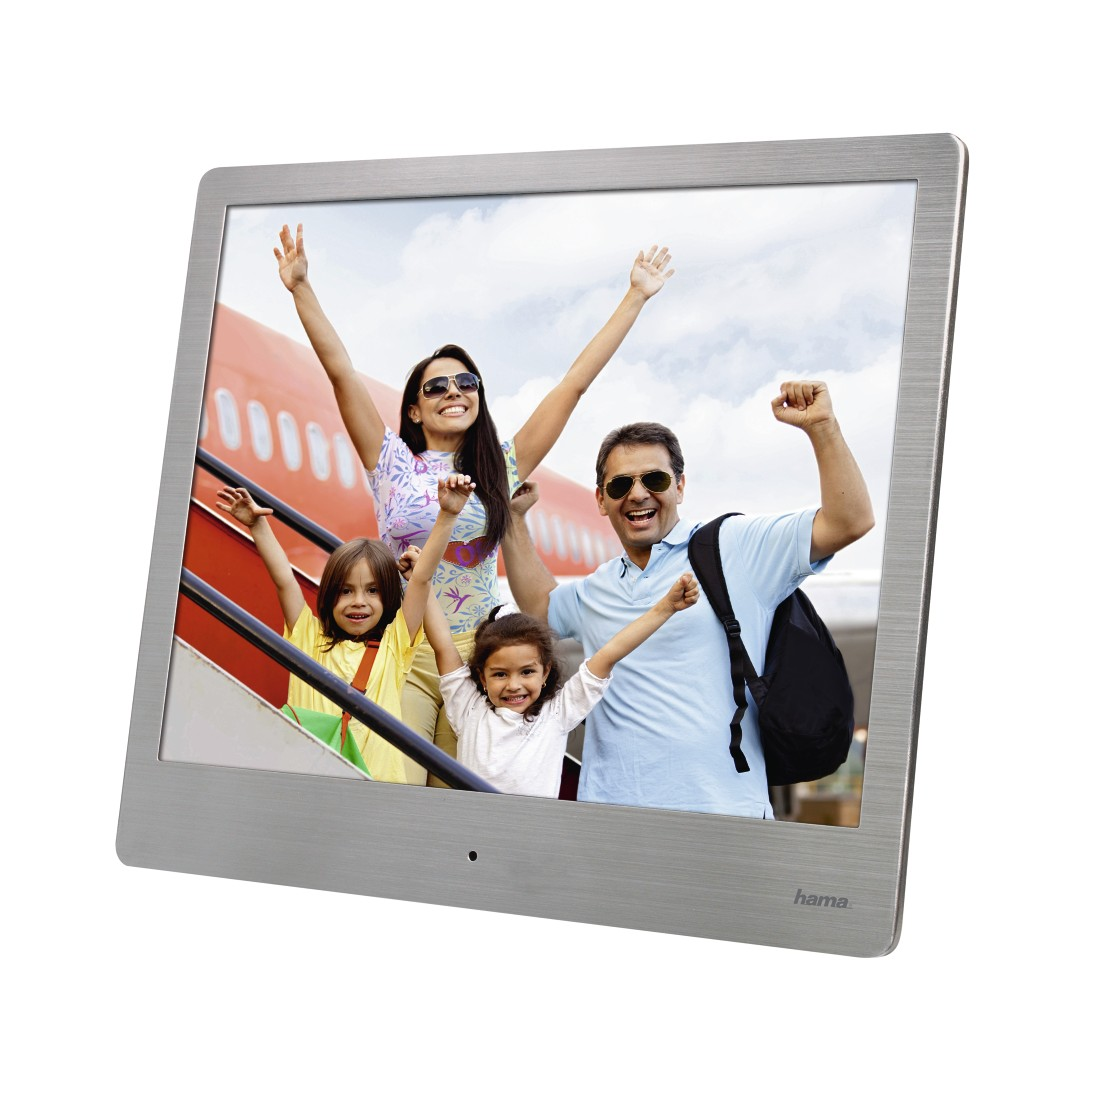 "abx5 High-Res Image 5 - Hama, ""8SLB"" Digital Photo Frame, 20.32 cm (8.0""), slim steel, 1024 x 768 px"